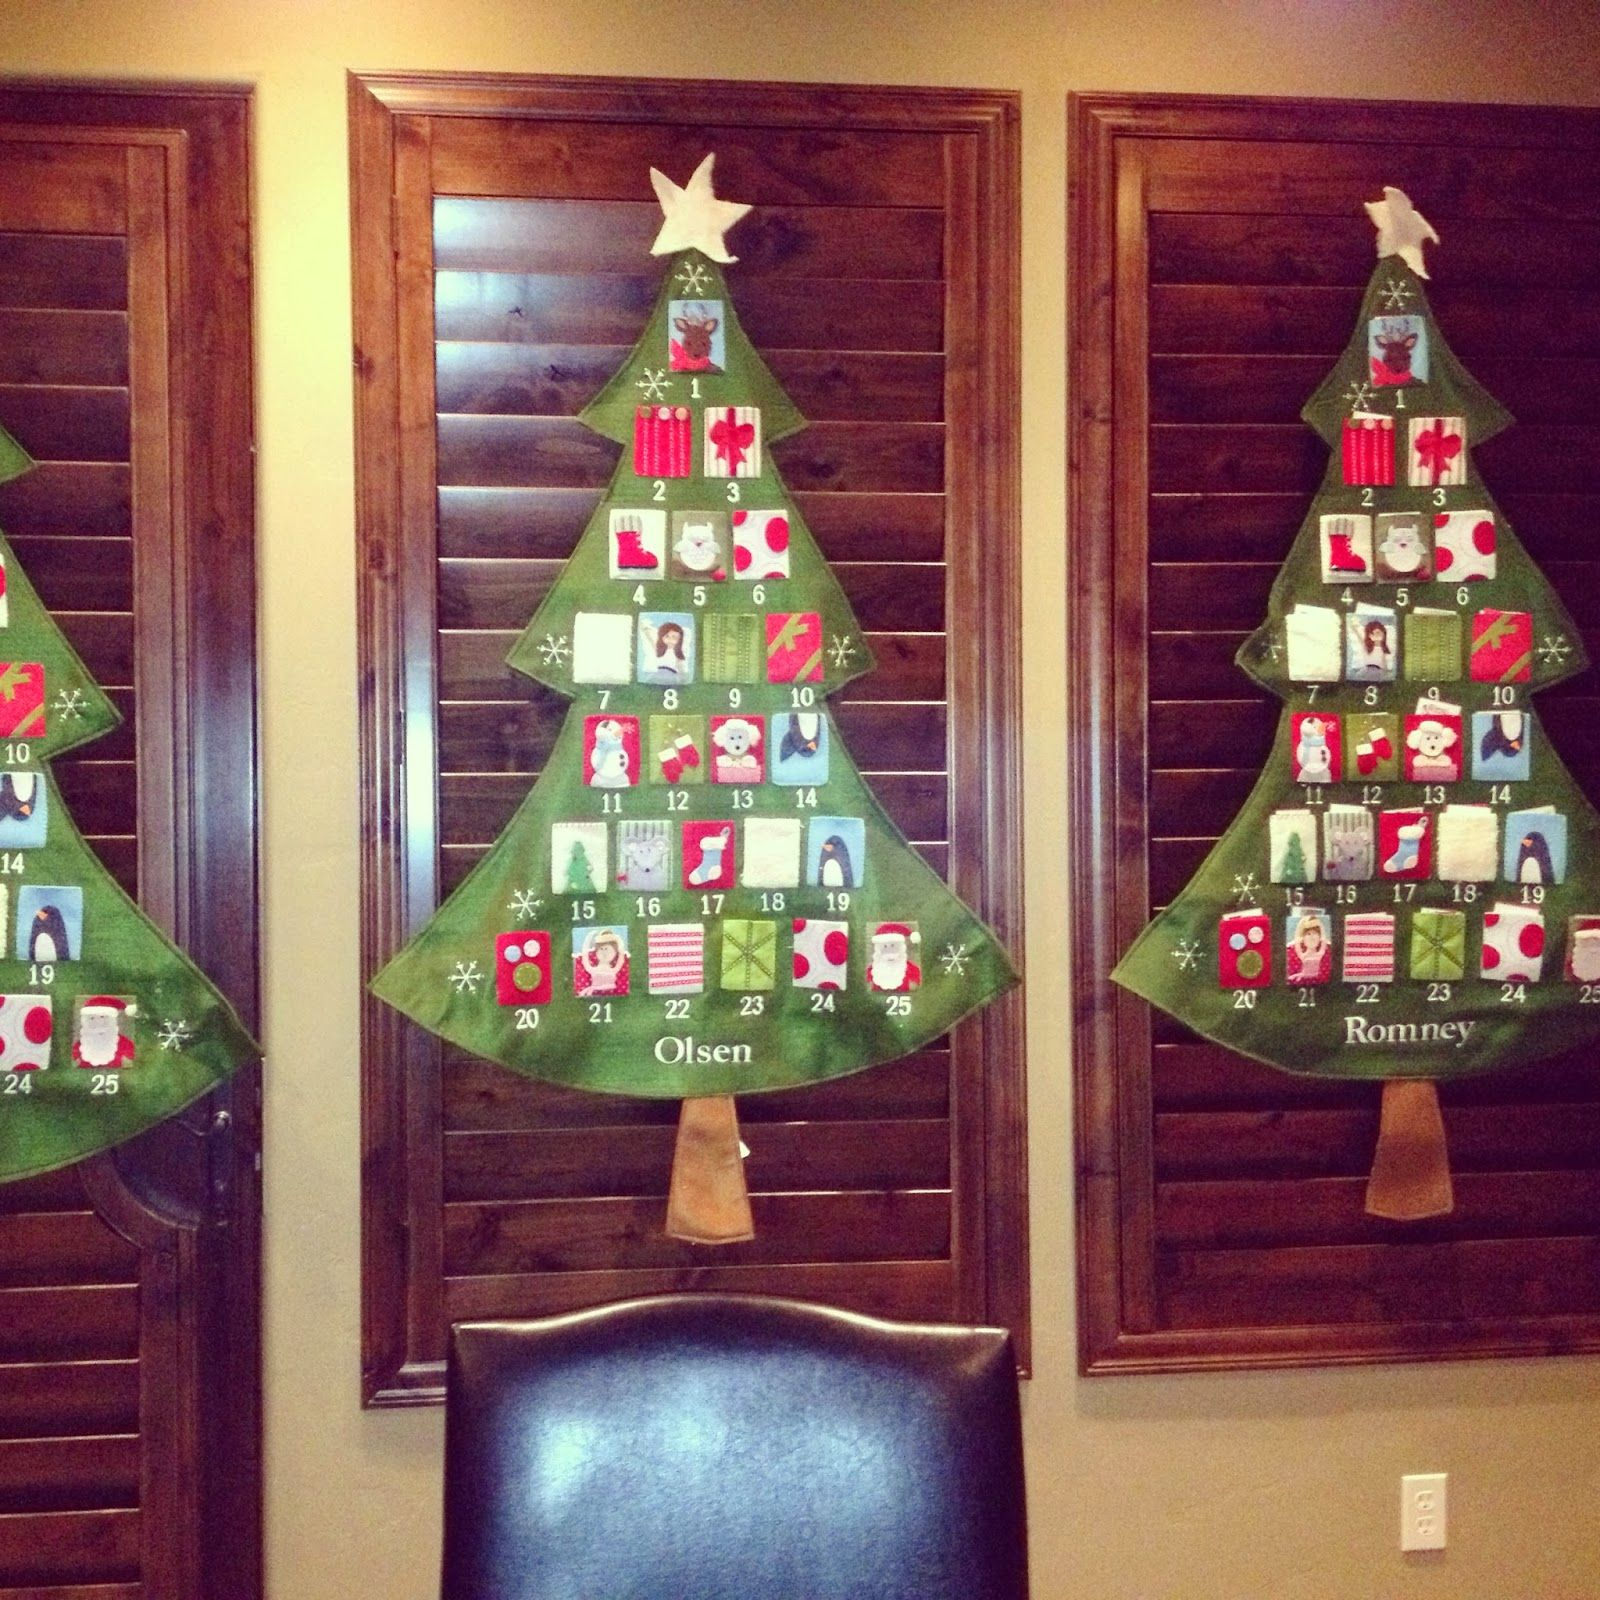 kids barn christmas tree calendar barns pottery watch diy advent dollar dupe